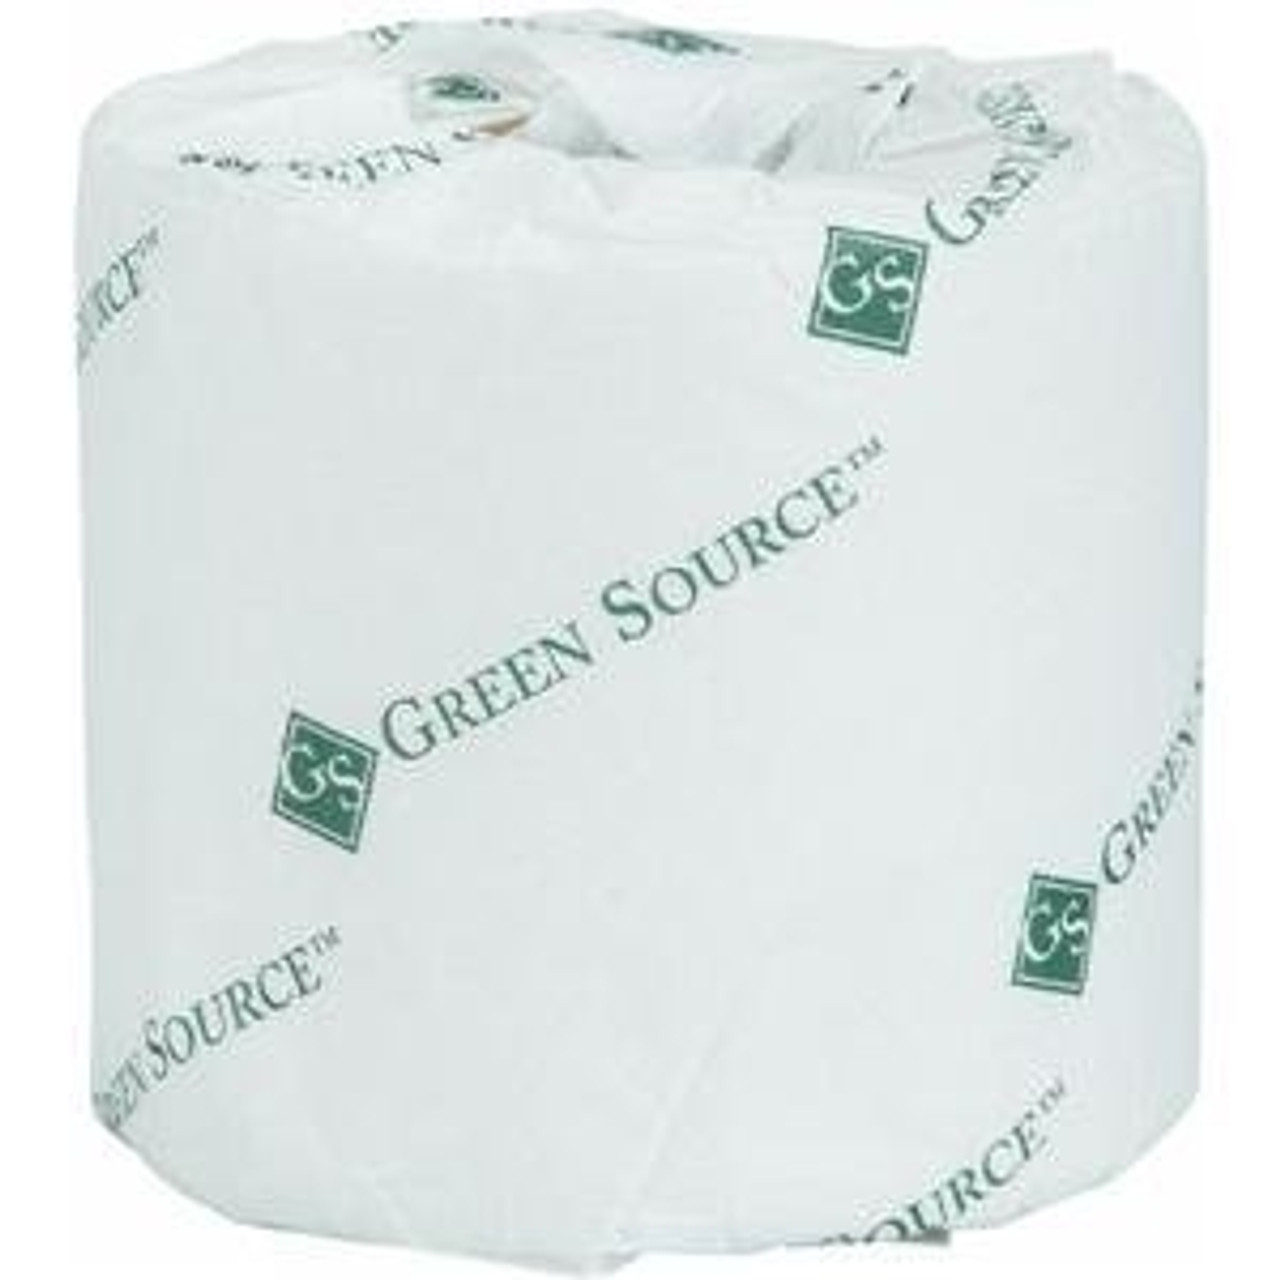 North River® Standard Bathroom Tissue exceeds the most stringent environmental standards. Ideal for use in offices, industrial facilities, schools, hotels, hospitals, food service and more. Made from 100% recycled material, with minimum 60% post-consumer content. White color finish. 500 sheets per roll, sold 96 rolls per case.